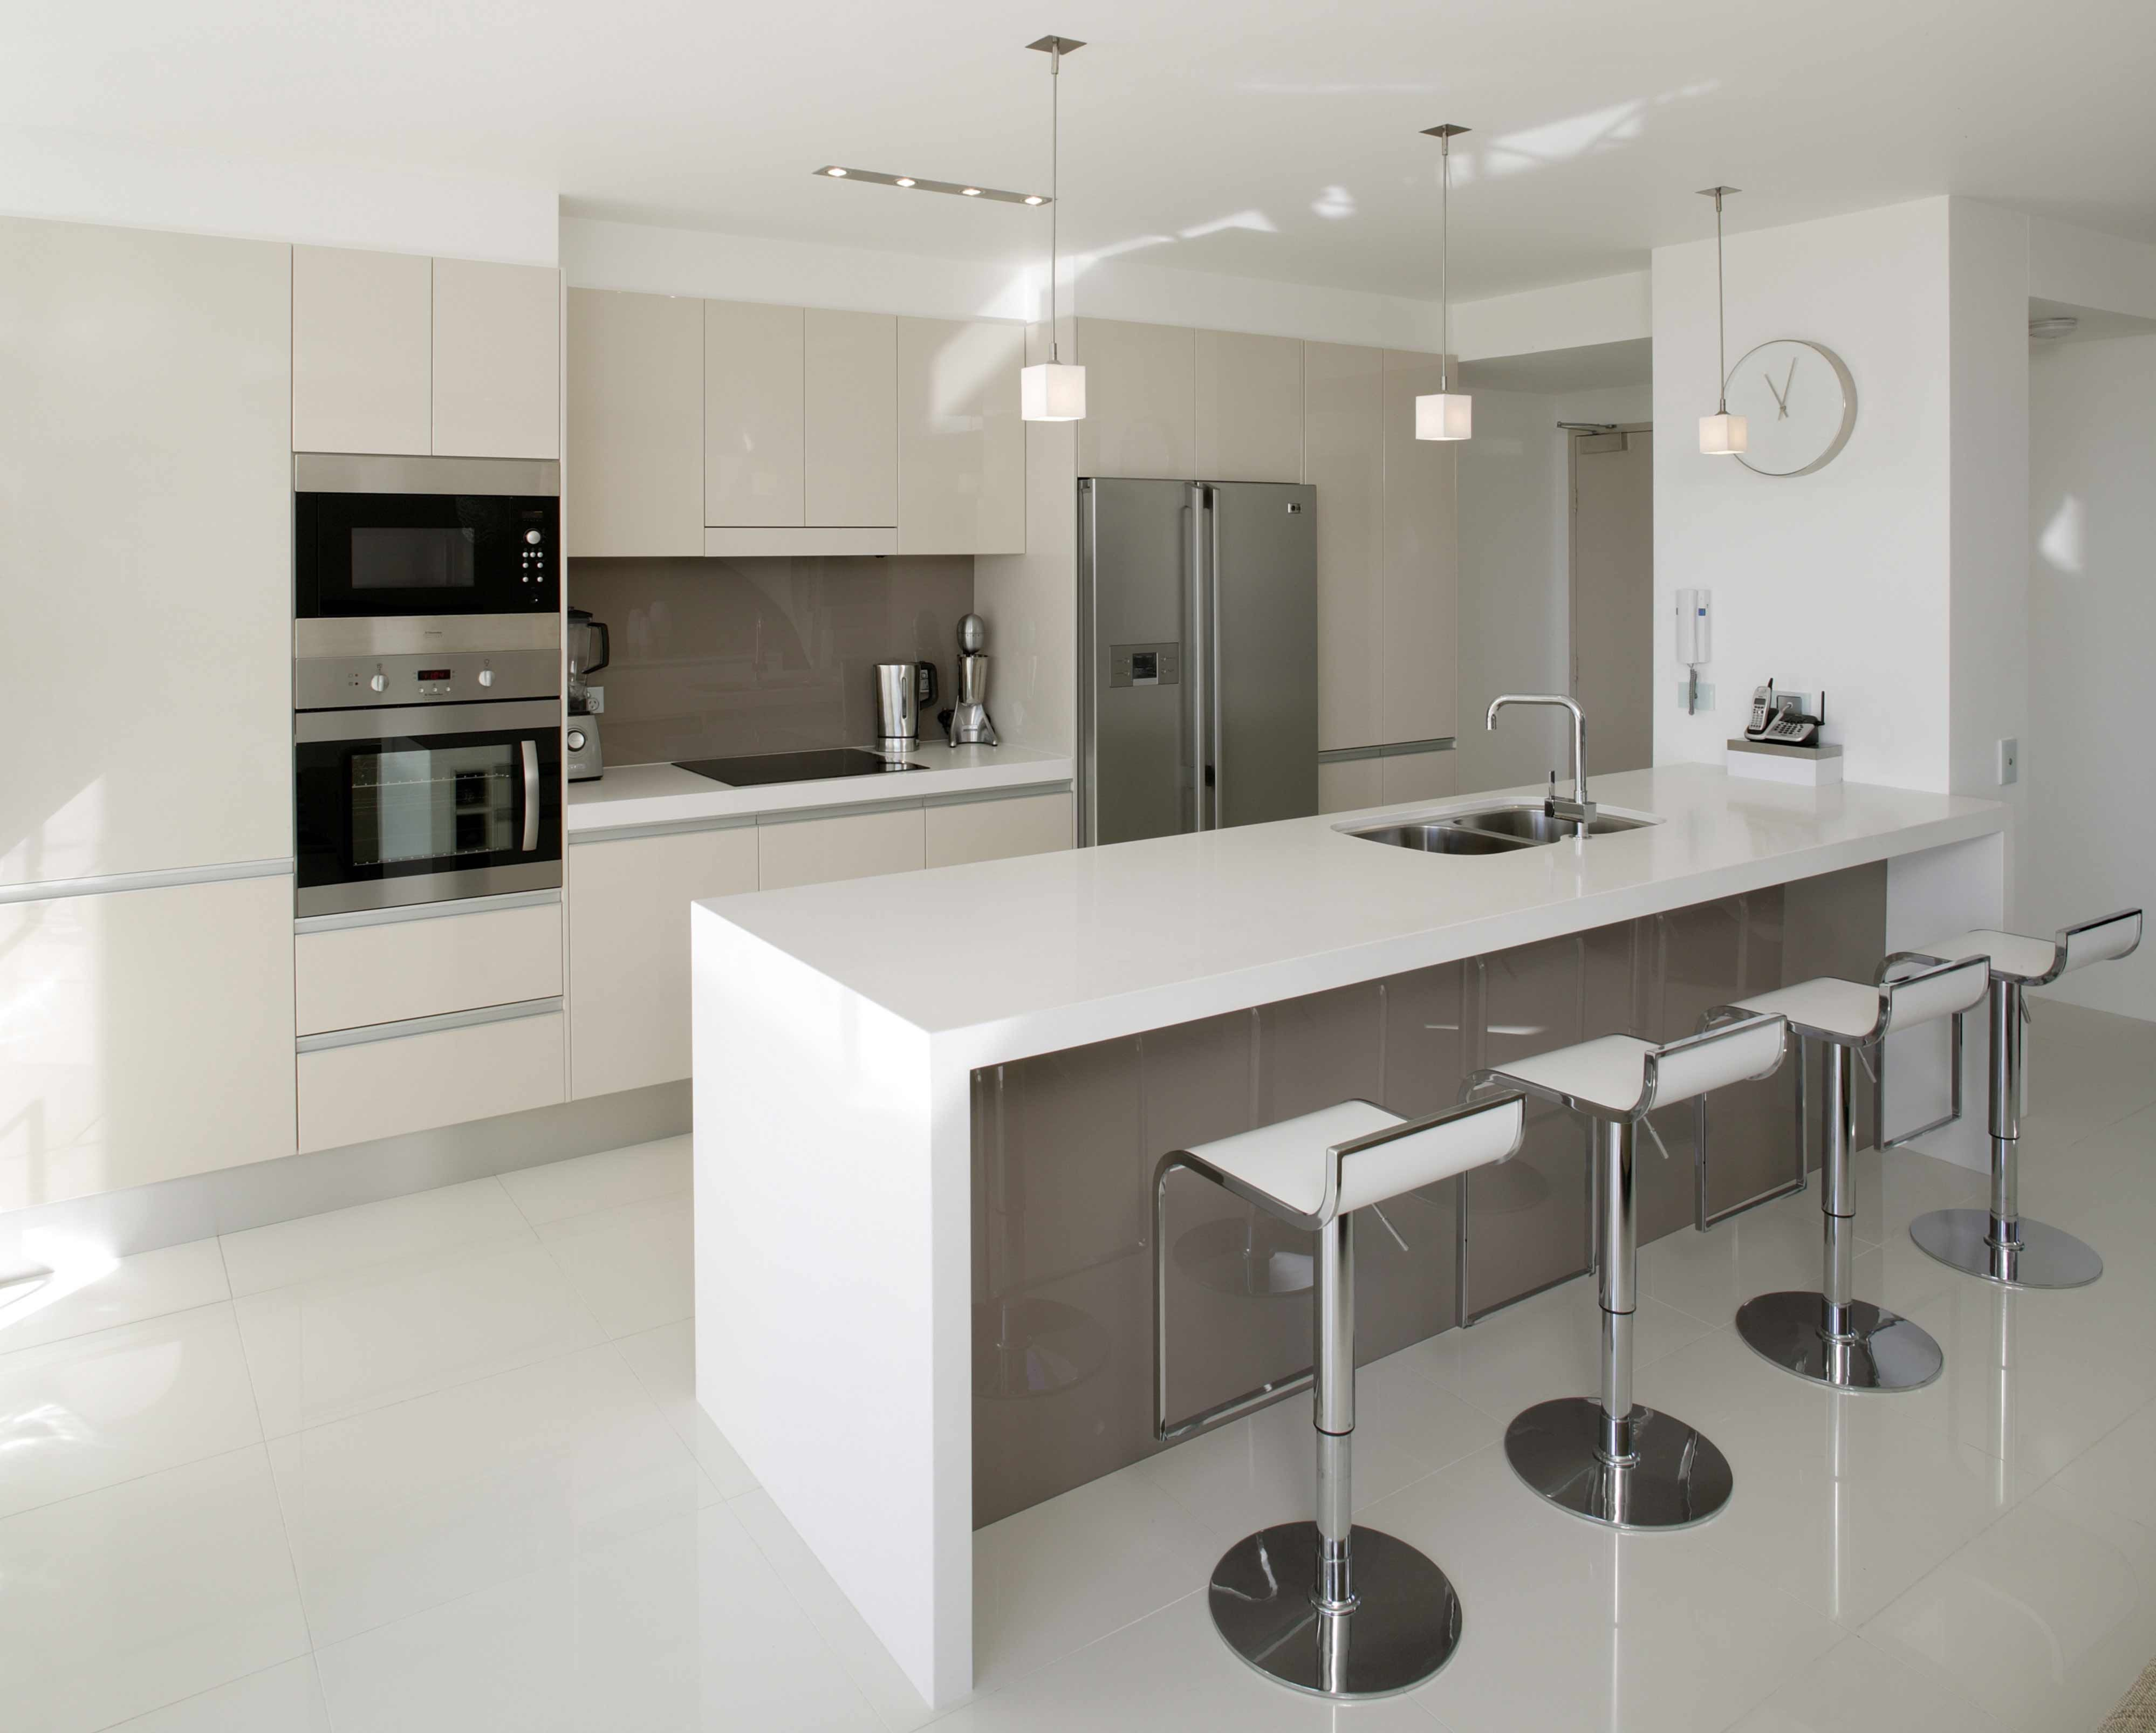 Küche interieur farbschemata image result for modern renovations kitchens  küche  pinterest  küche